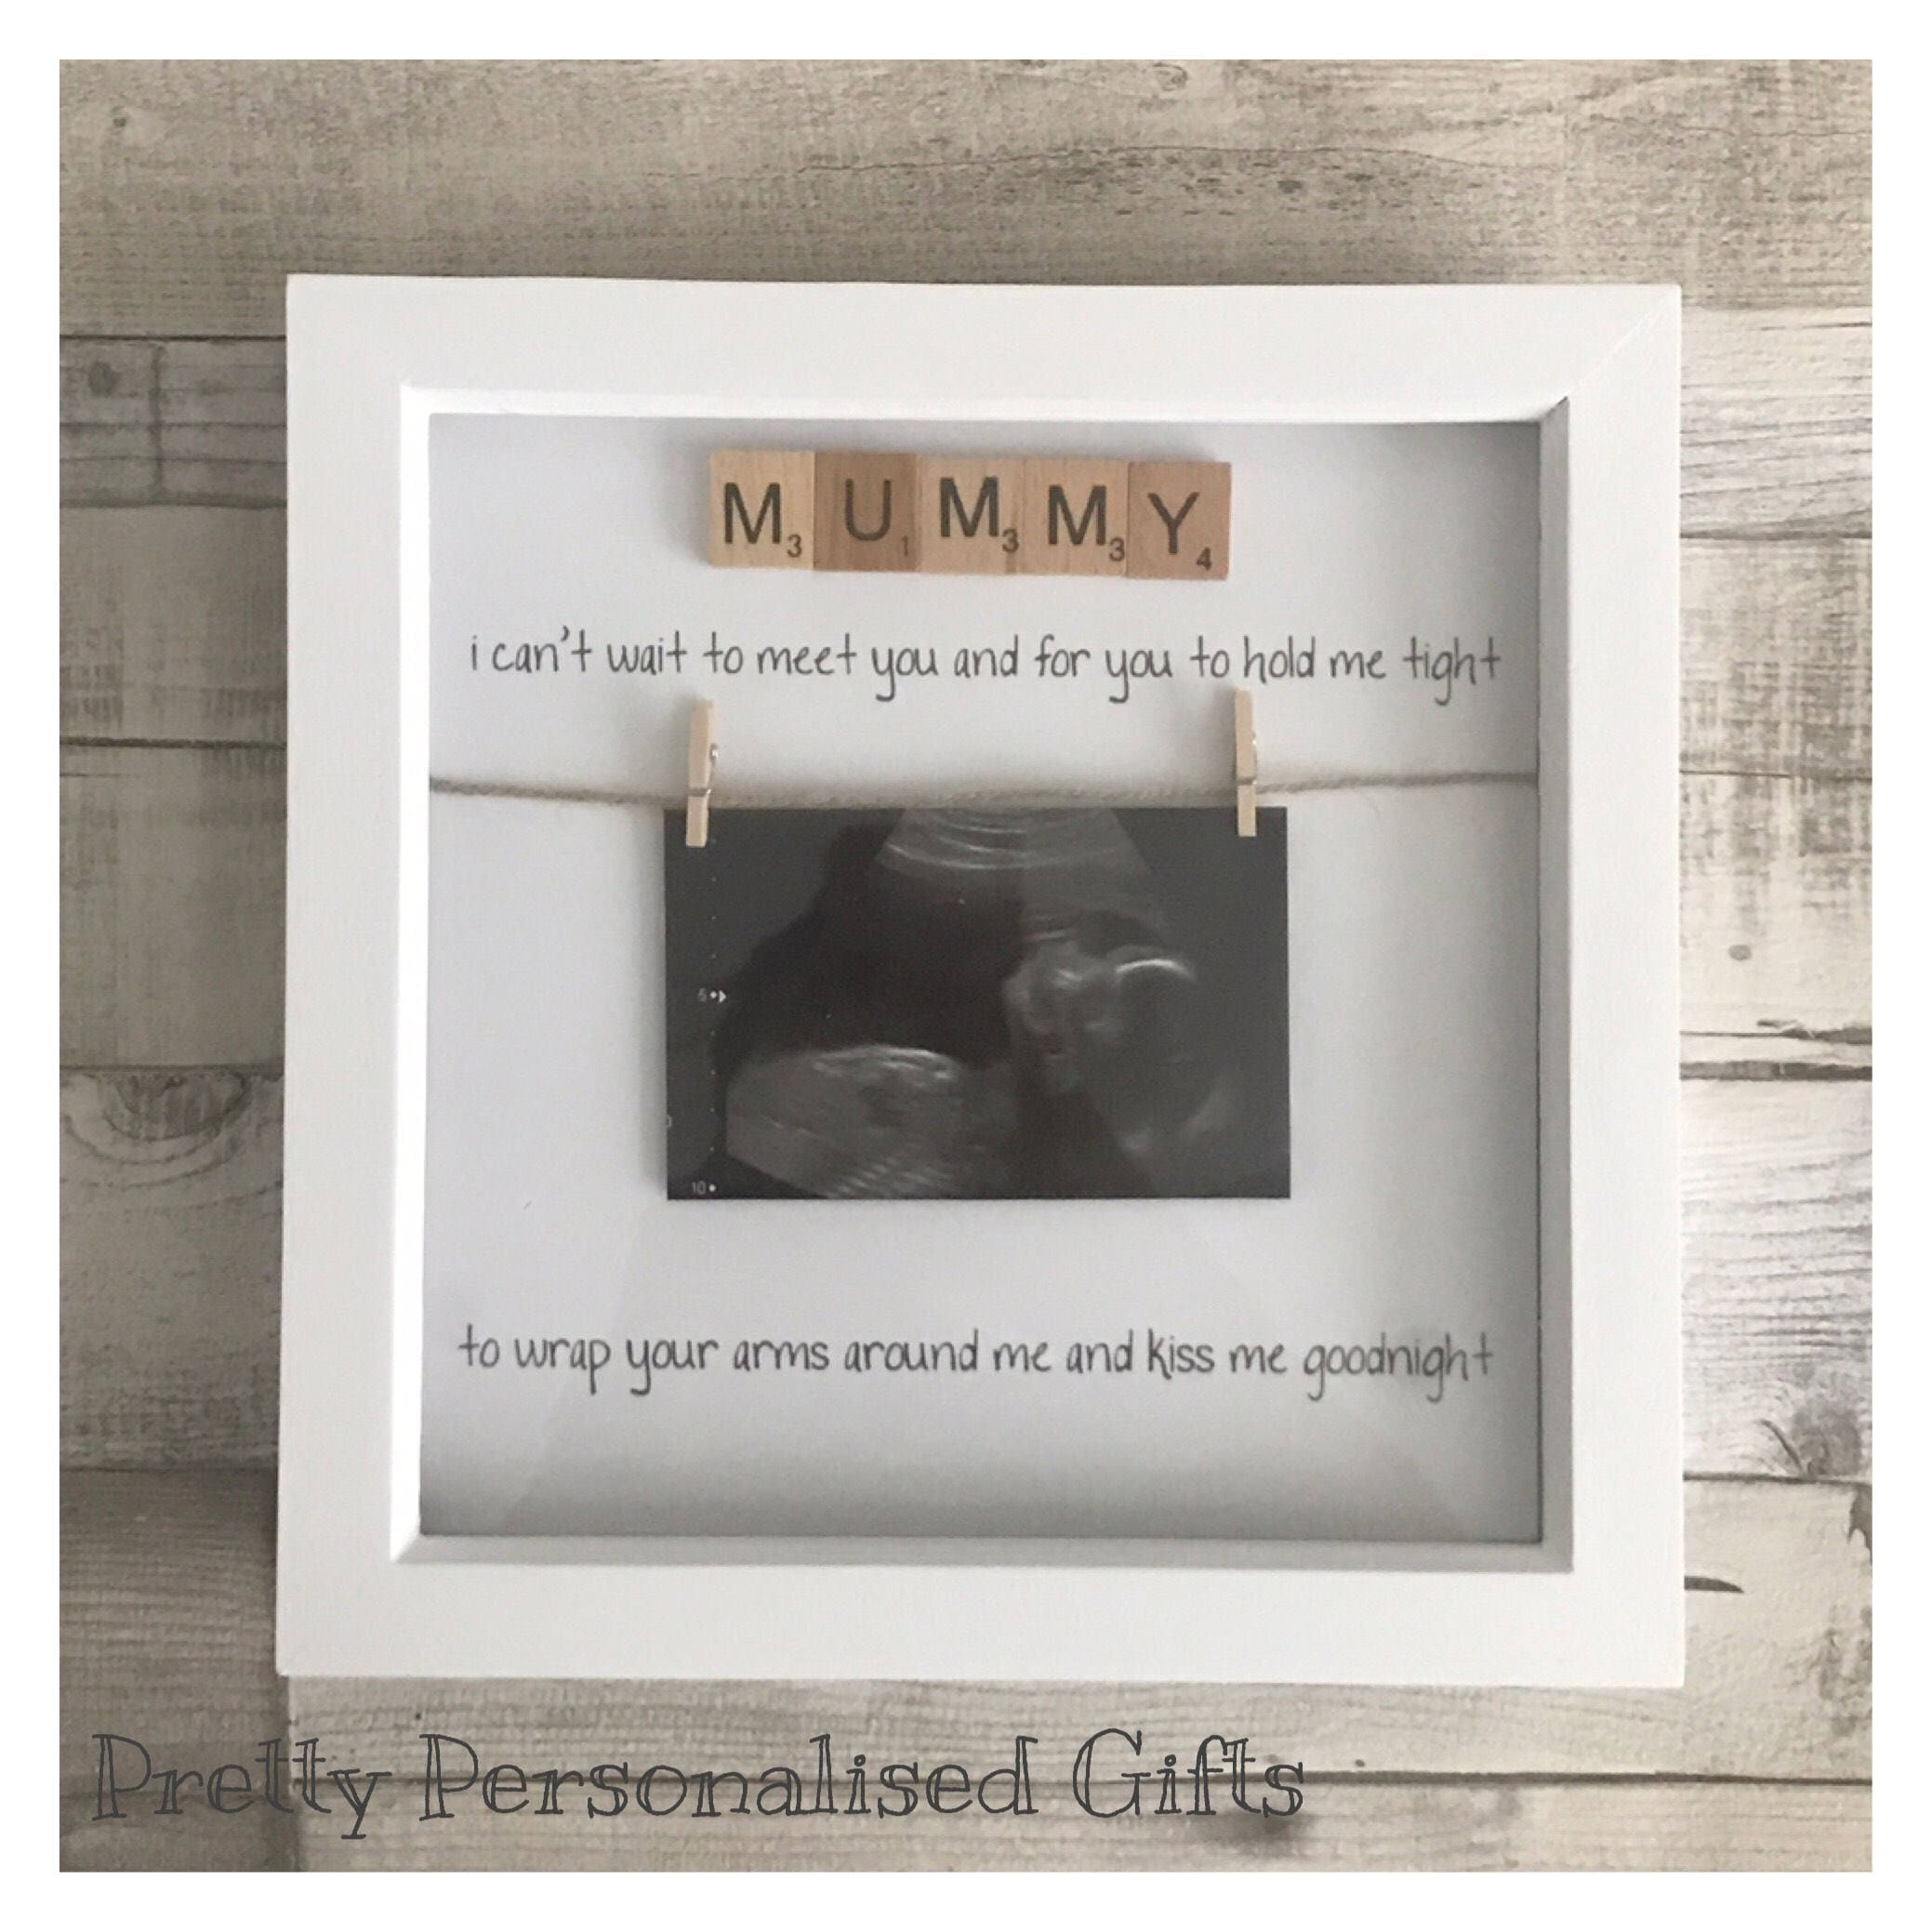 Mummy daddy poem gift frame from bump scan frame scrabble words 3d ...